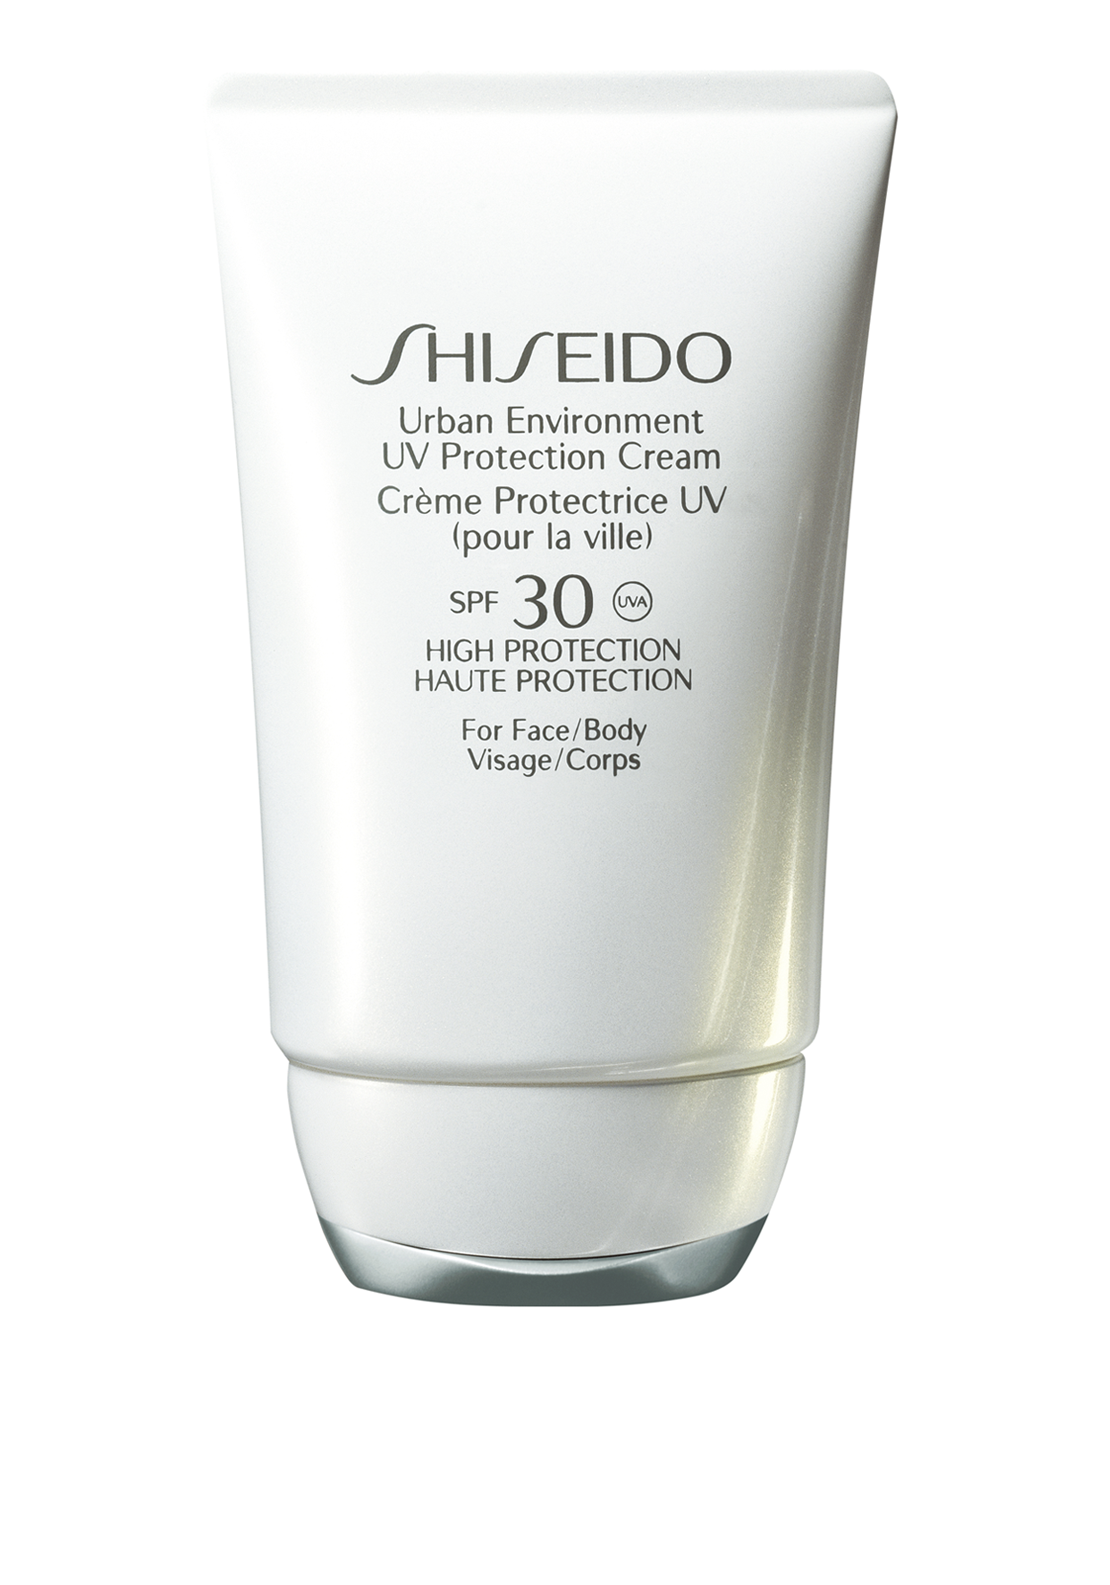 Shiseido Urban Environment UV Protection Cream Plus SPF30, 50ml